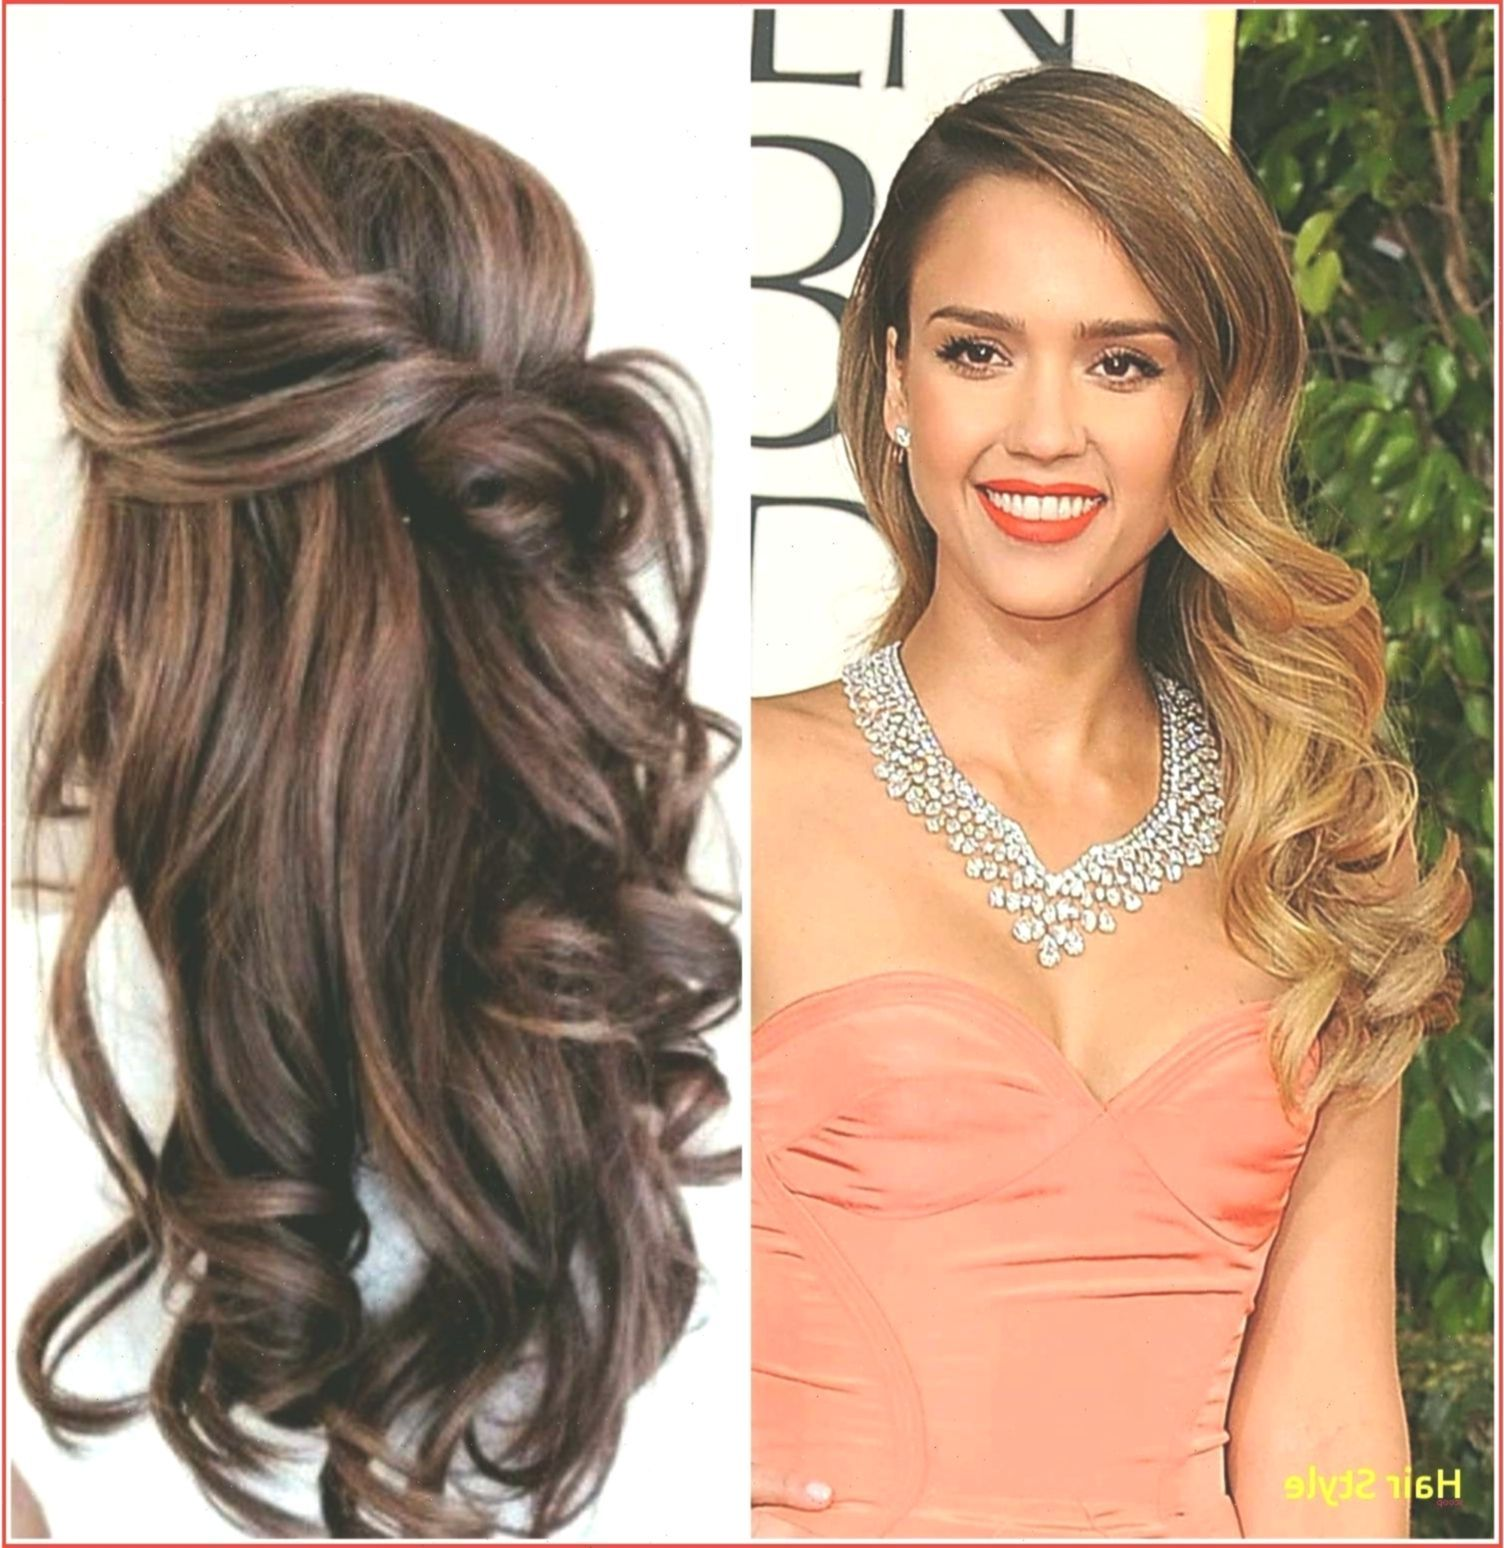 Prom Hairstyles For Strapless Dresses Prom Hairstyles For Strapless Dresses 1334 Dresses Hairst In 2020 Cute Hairstyles Long Hair Styles Strapless Dress Hairstyles